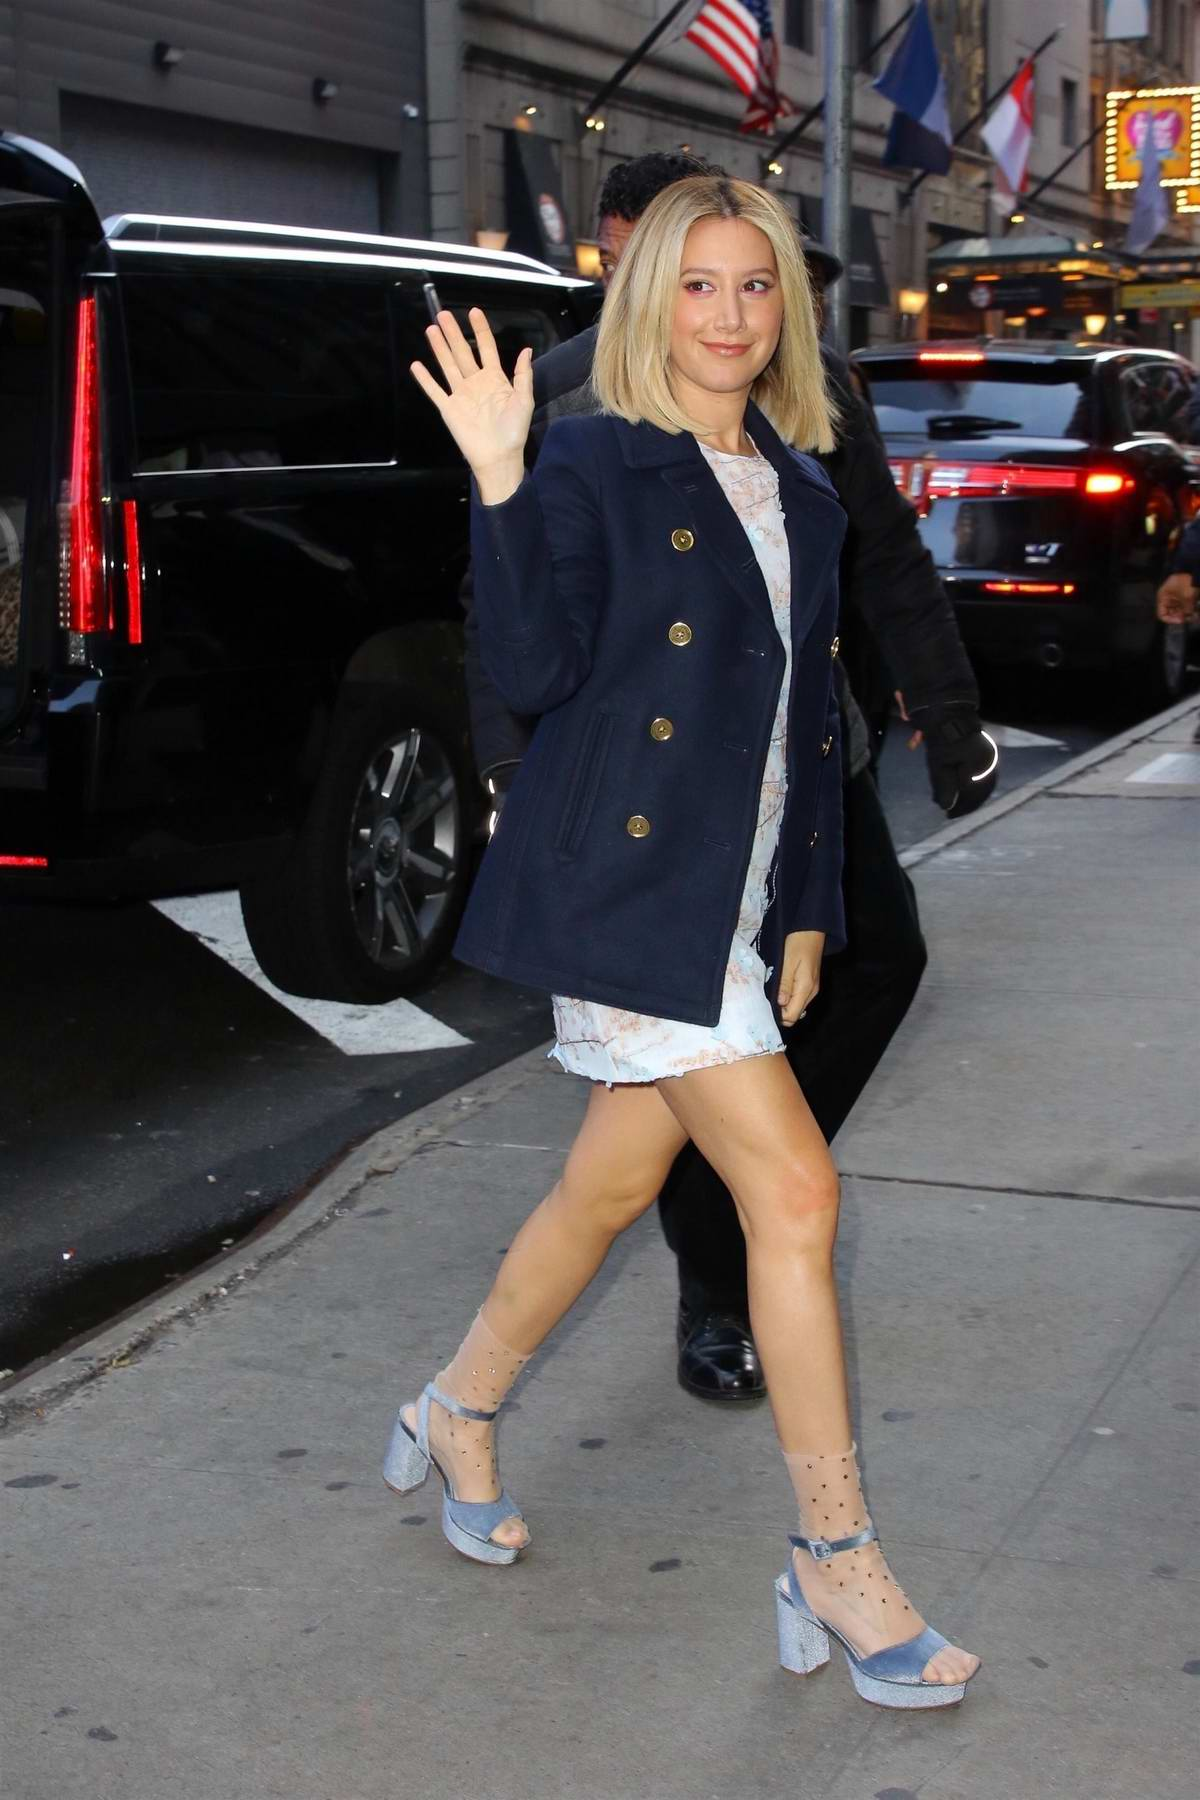 Ashley Tisdale waves for the camera as she arrives at the 'Good Morning America' show in New York City